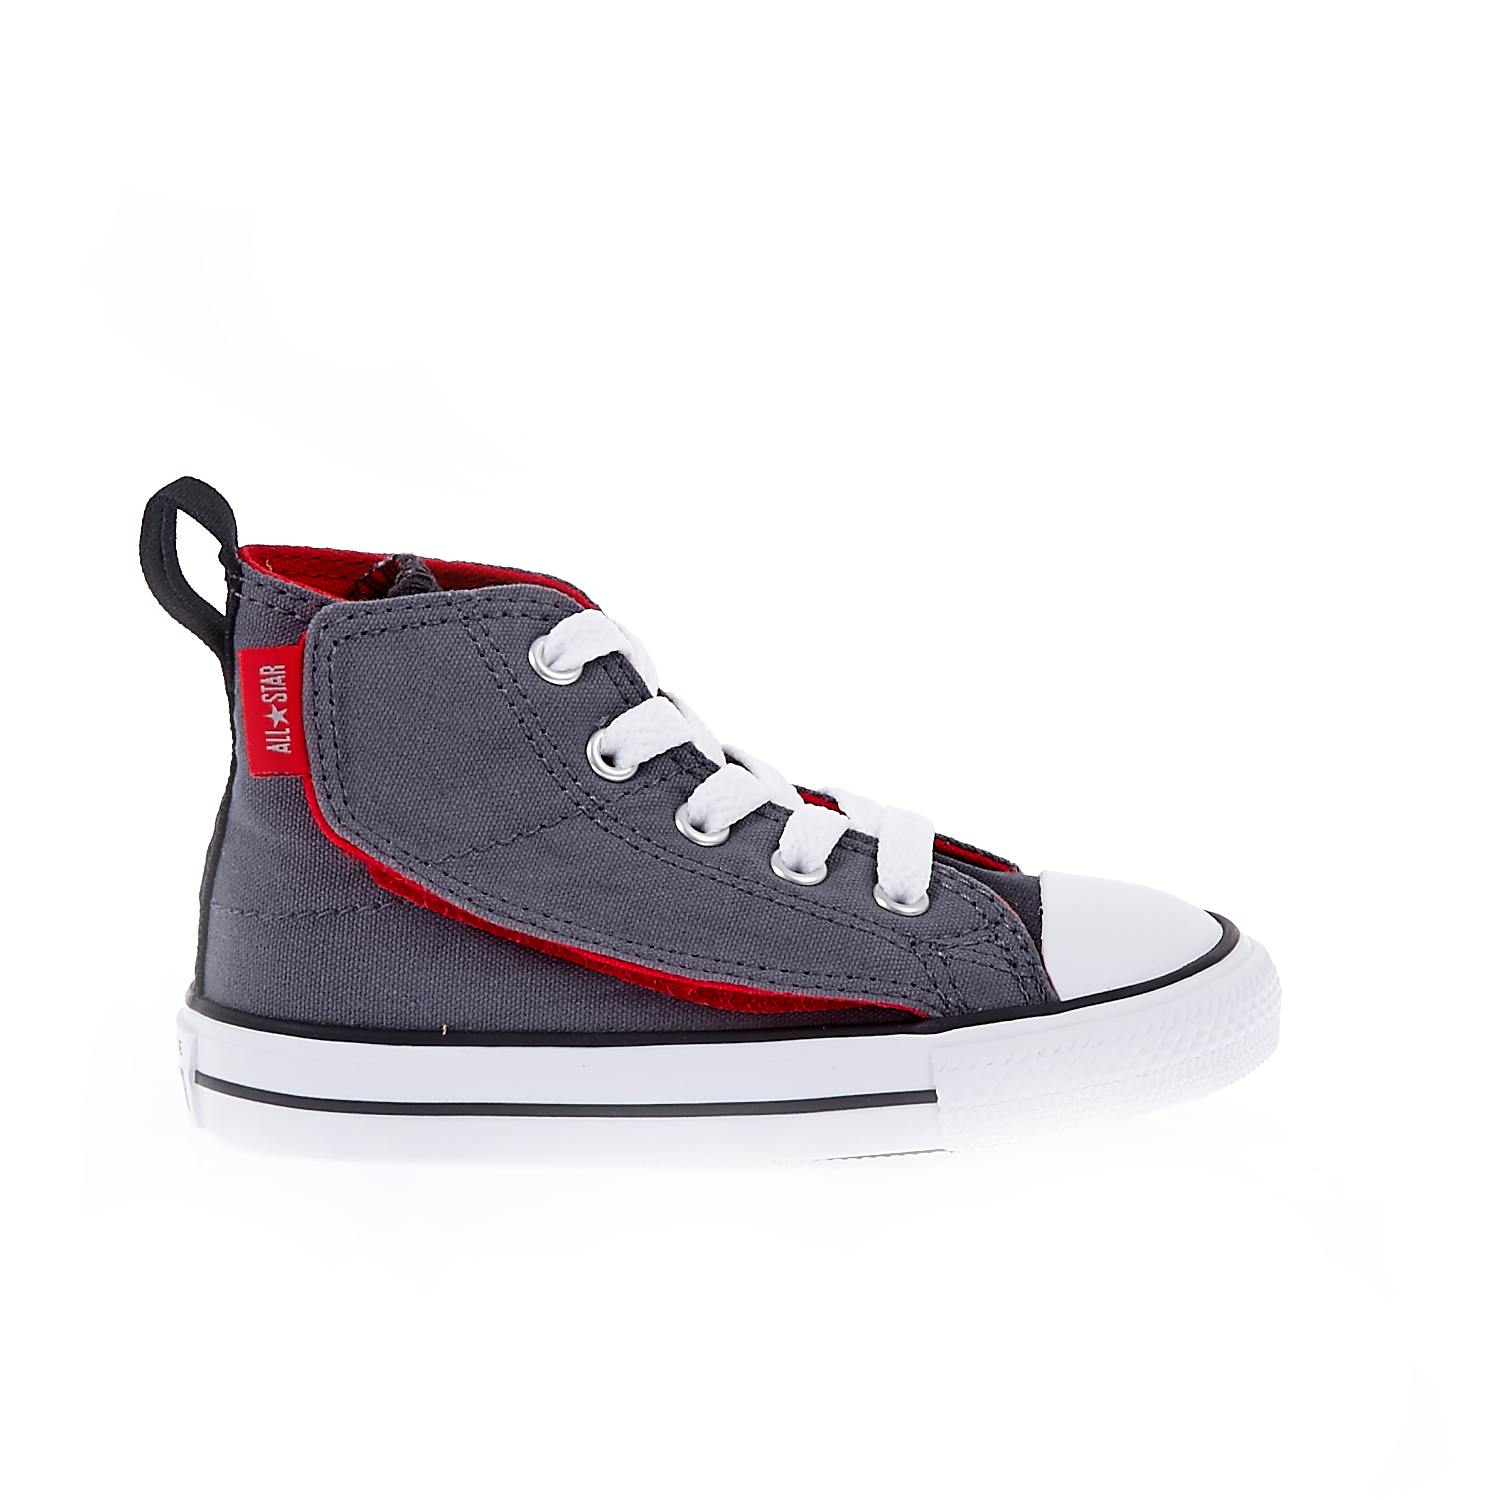 CONVERSE – Βρεφικά παπούτσια Chuck Taylor All Star Simple S γκρι